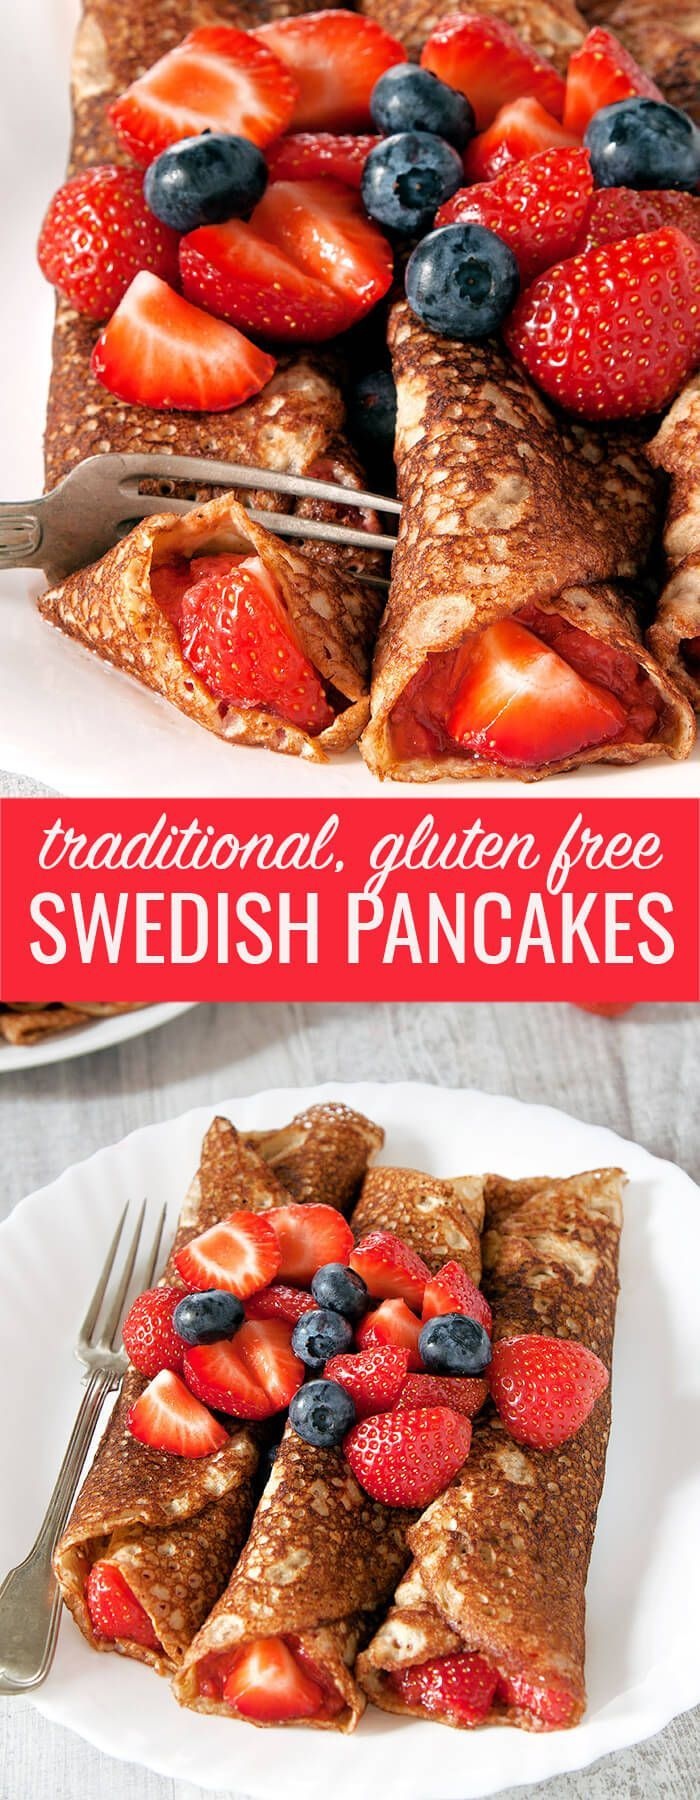 Traditional Swedish pancakes are like a cross between American pancakes and French crêpes. So easy, and perfect for any meal!